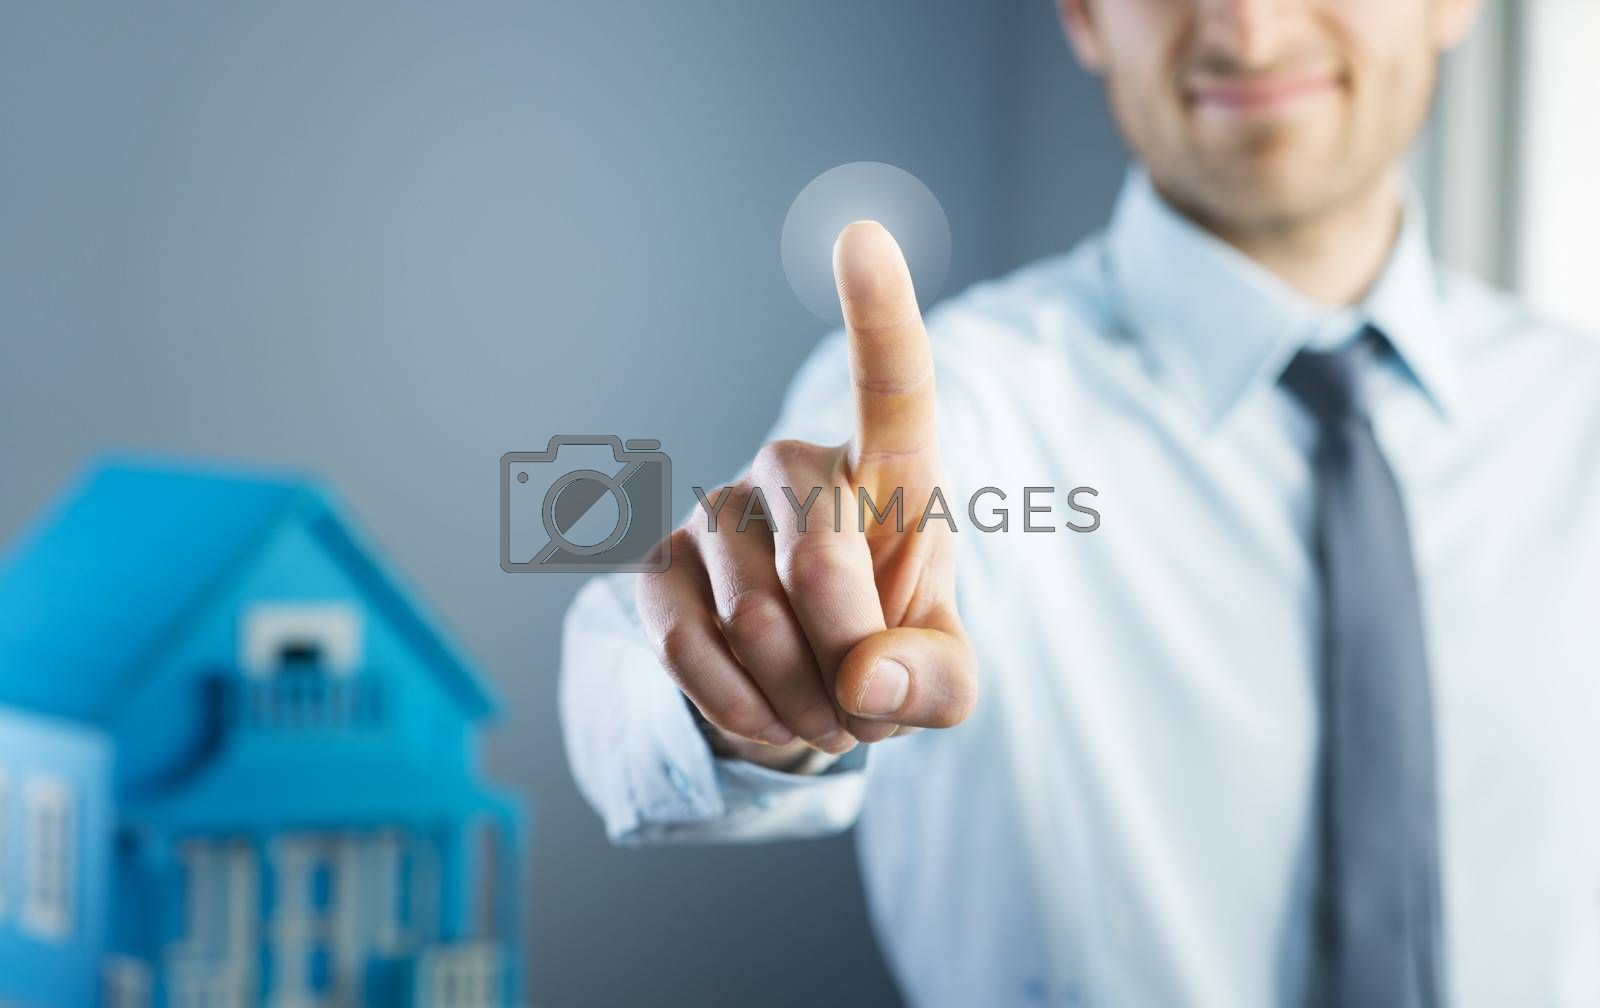 Man using touch screen interface with model house on background.